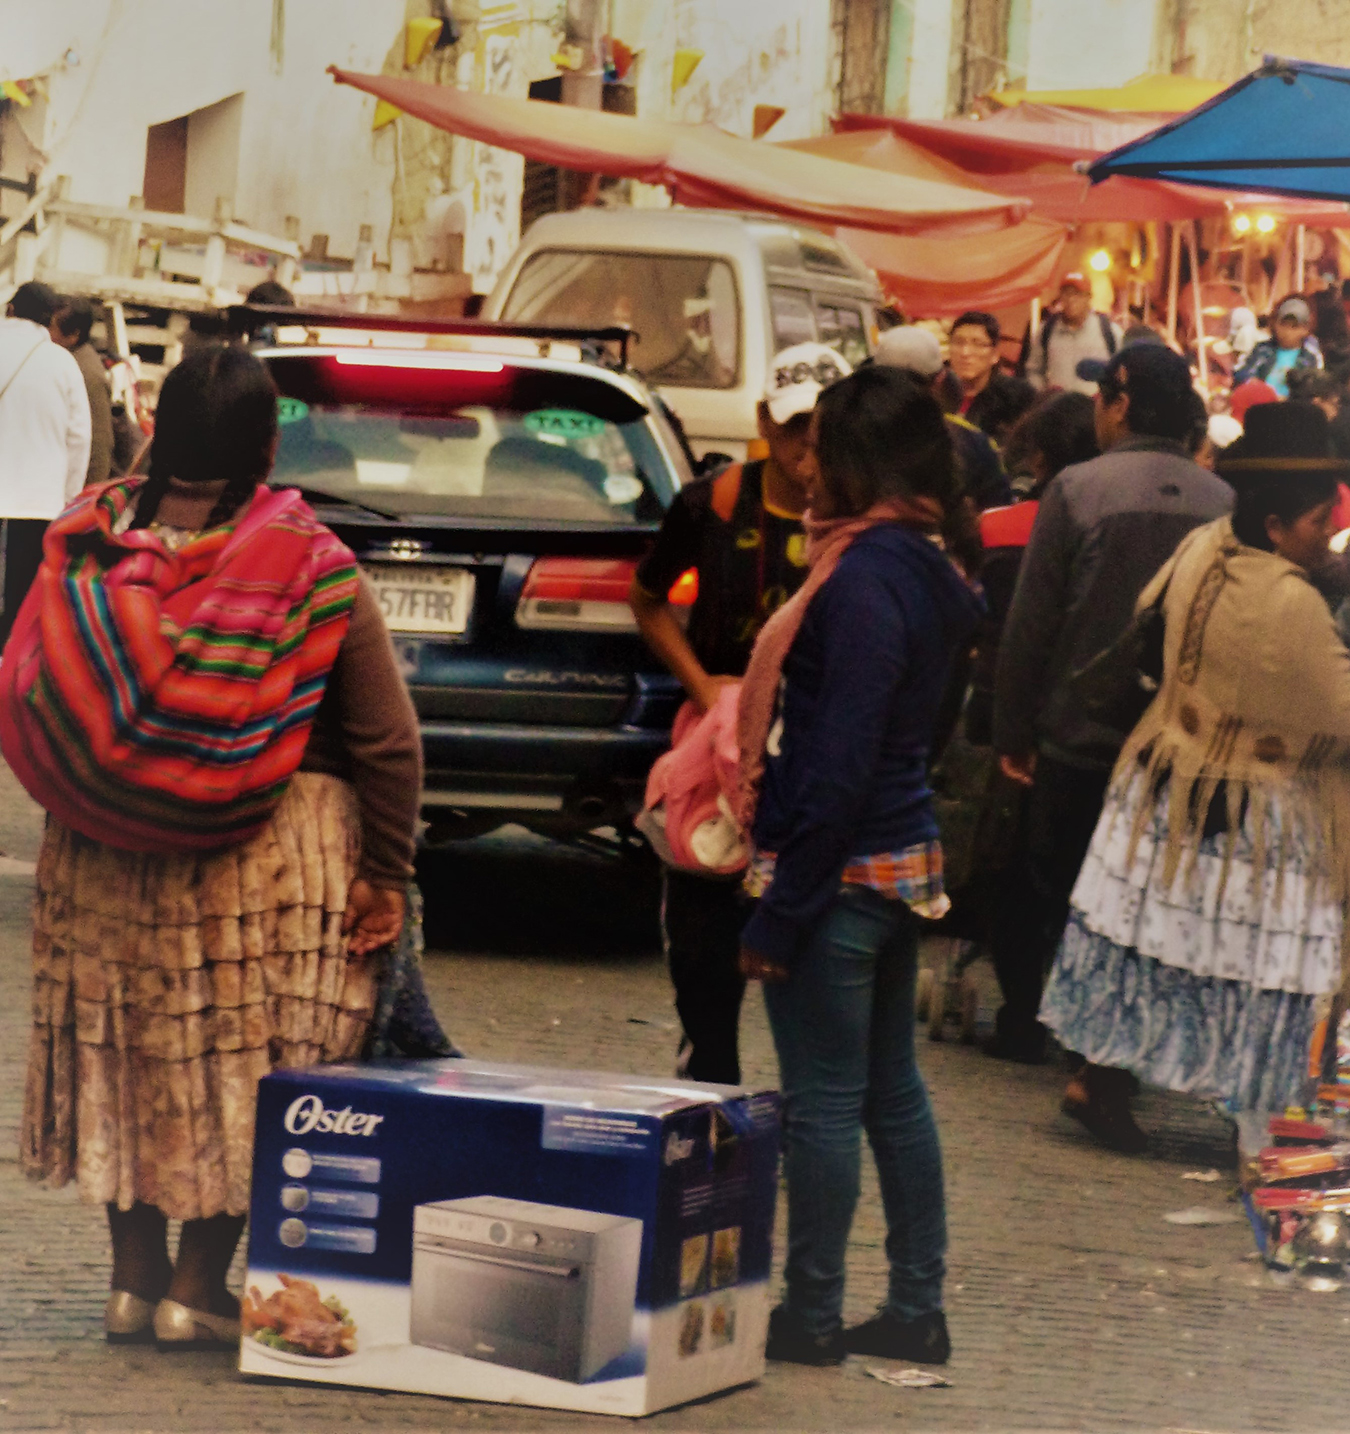 Clients, probably mother and daughter, after purchasing one of the popular Oster household appliances, La Paz. Photo by Juliane MMüller.